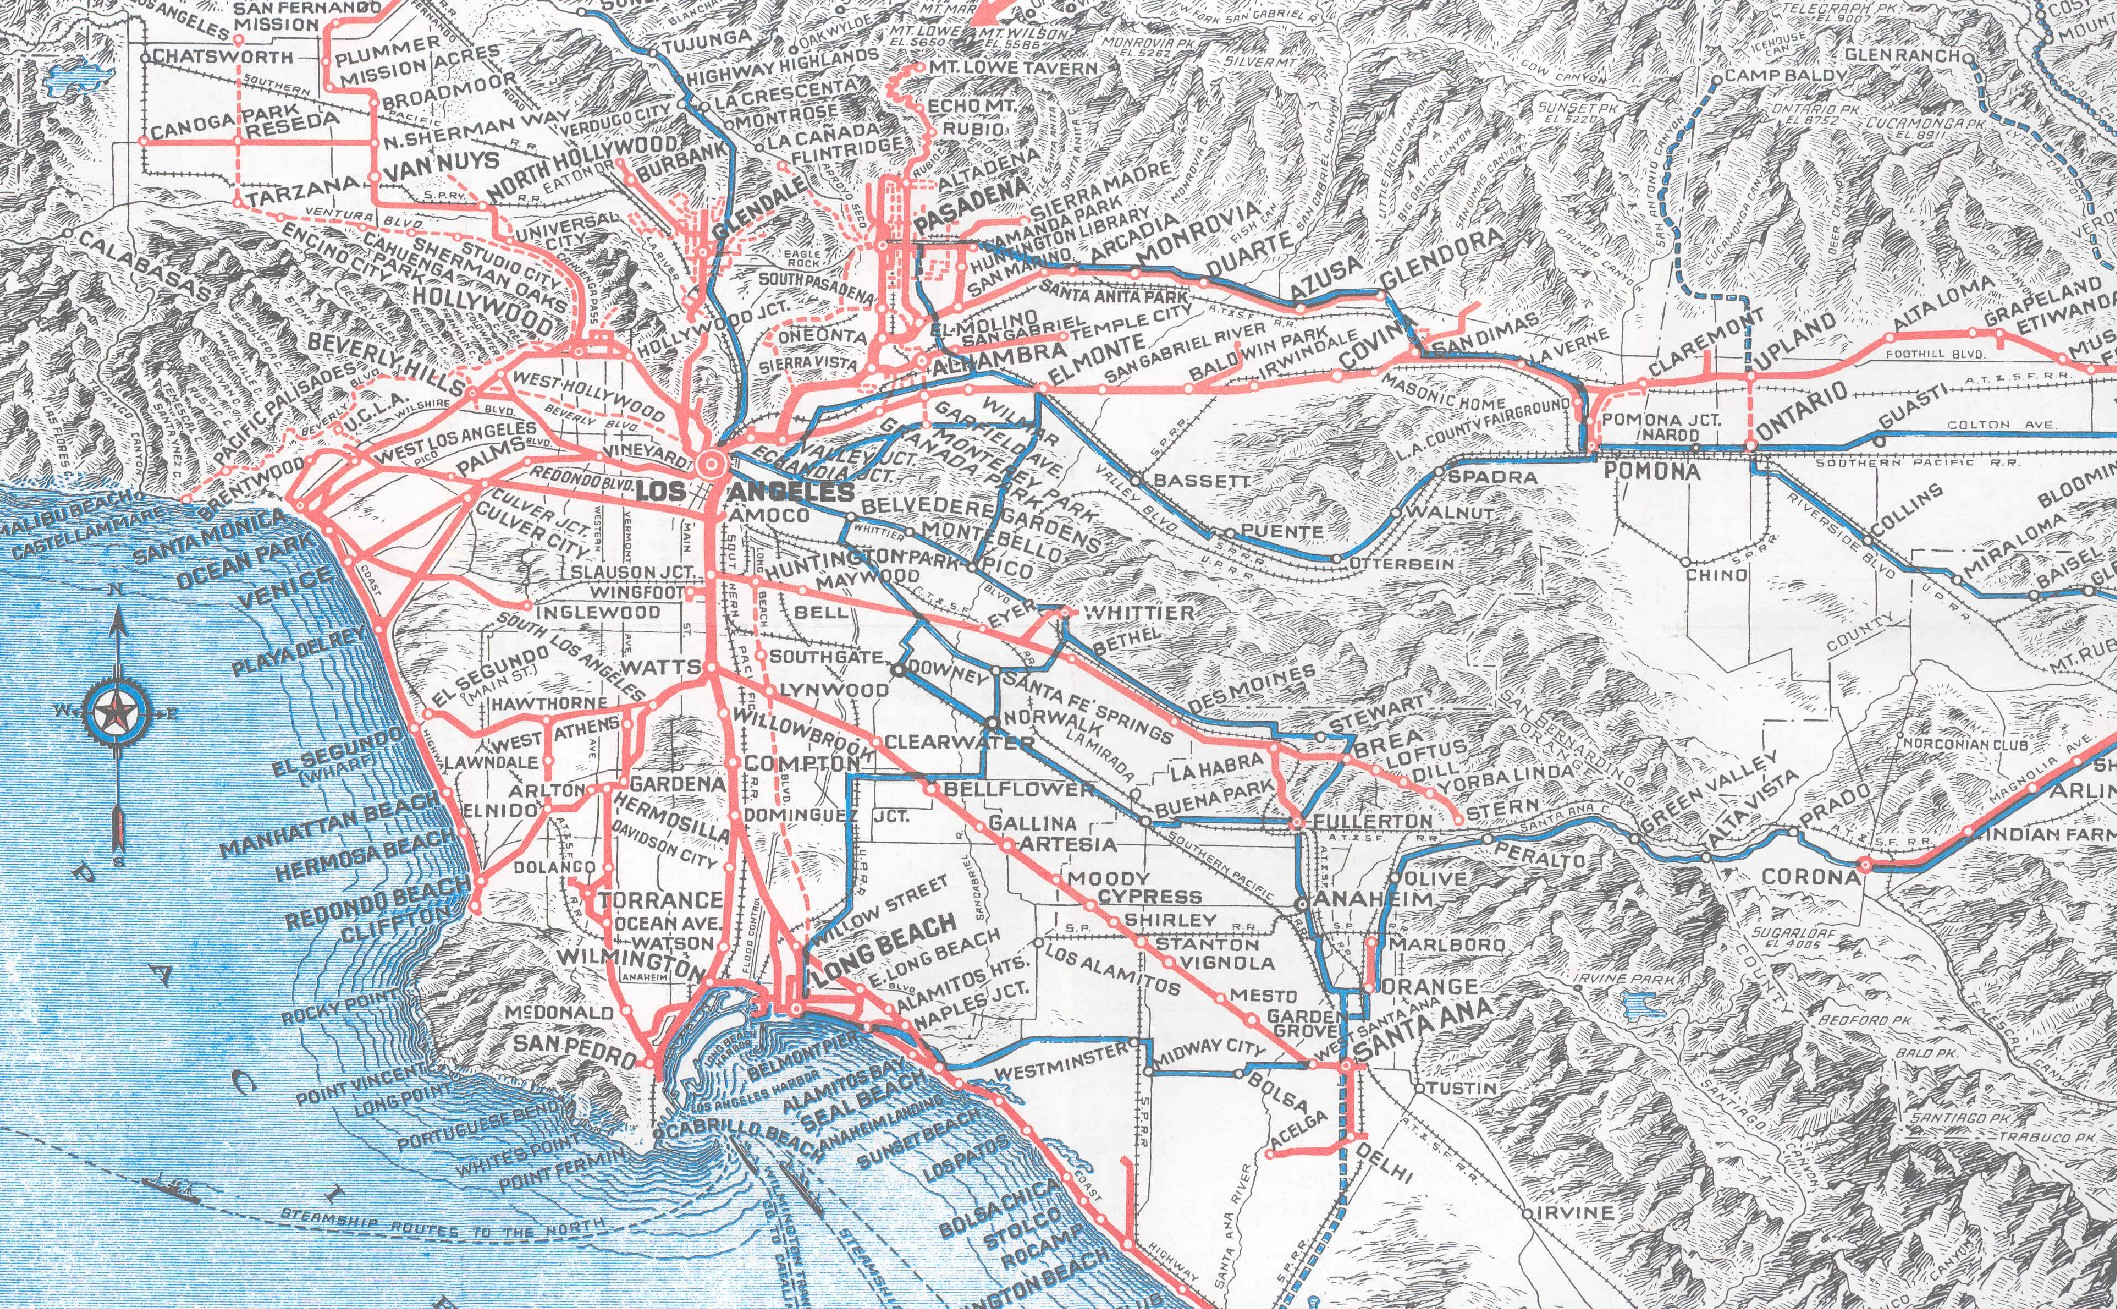 Los Angeles In Maps  The Curious Case Of Miss Laura J Whitlock - Los angeles in map